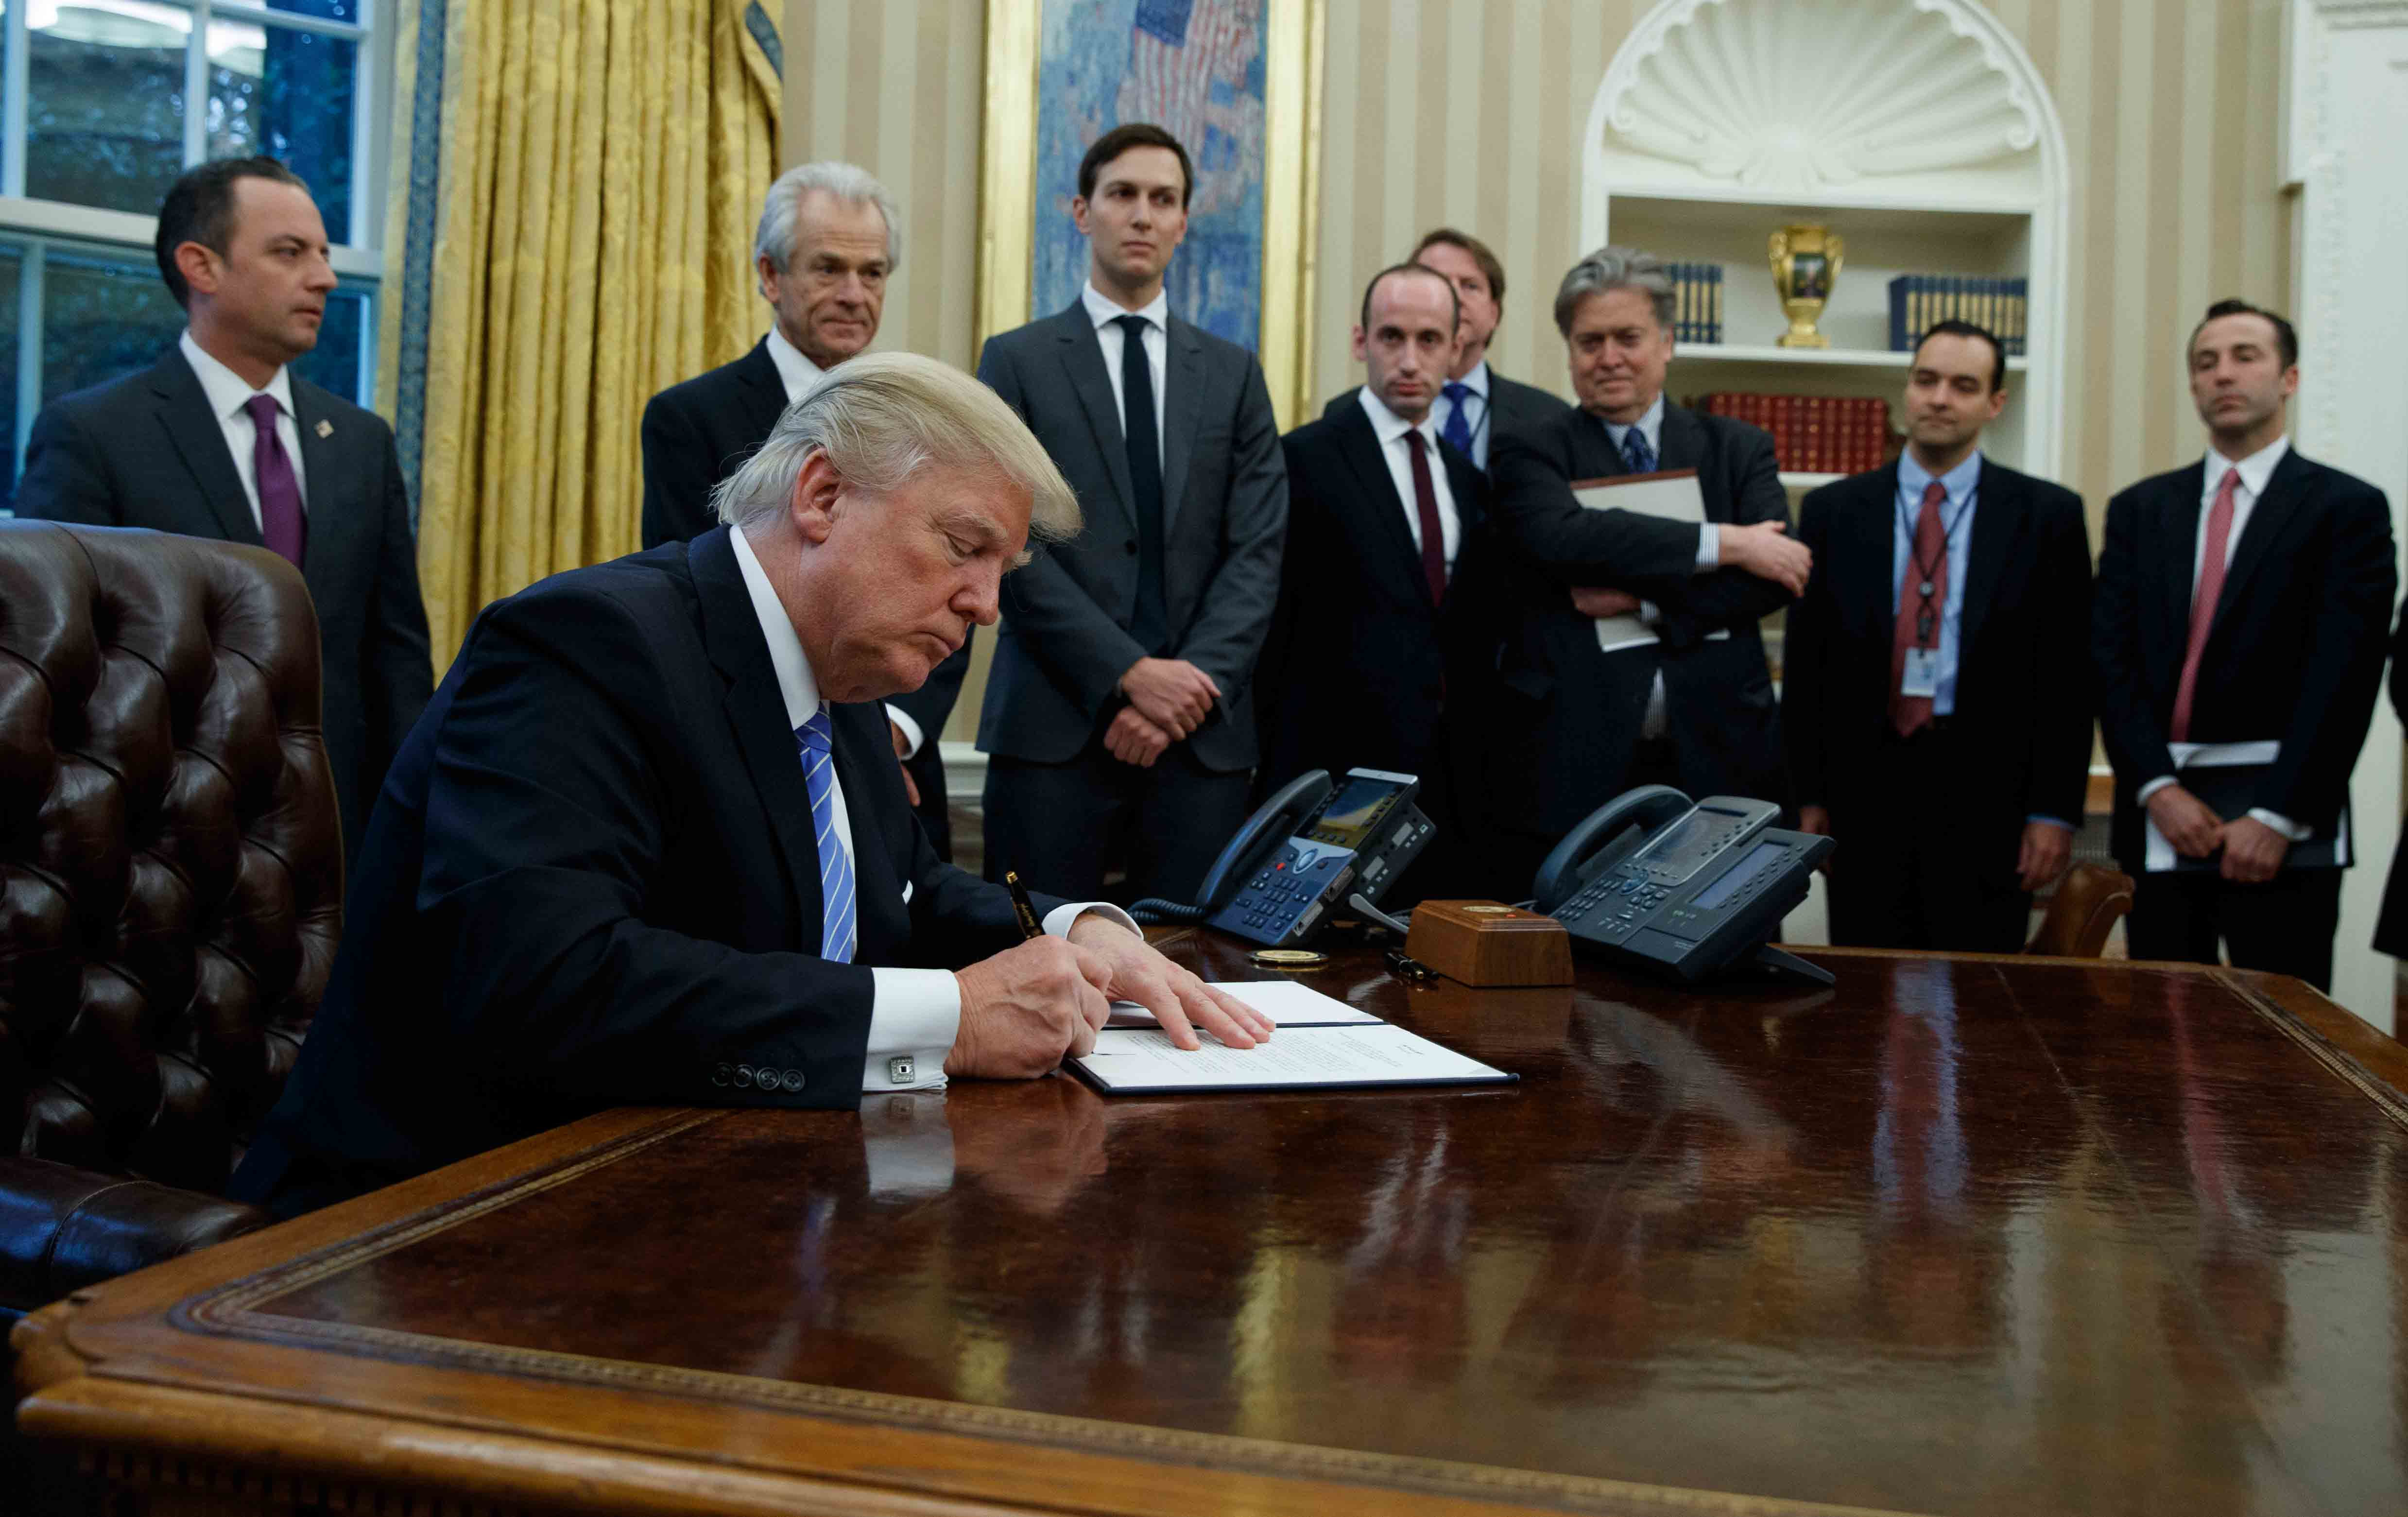 Accompanied by a line-up of his white male advisers, President Donald Trump signed a